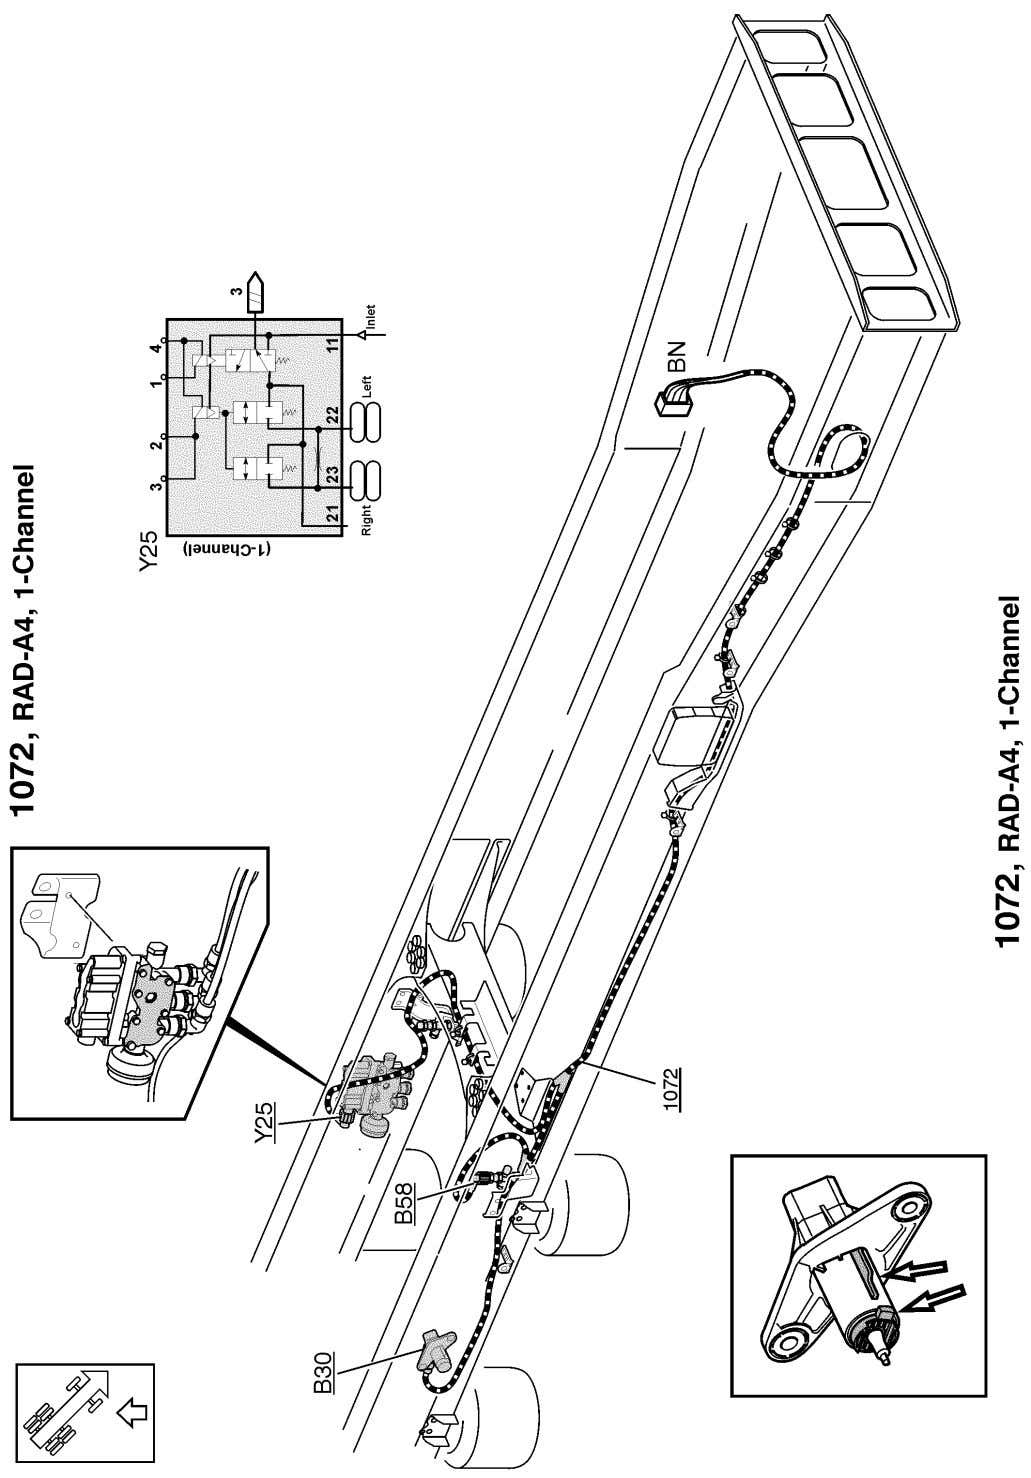 T3081940 Wiring diagram Page 177 (298)